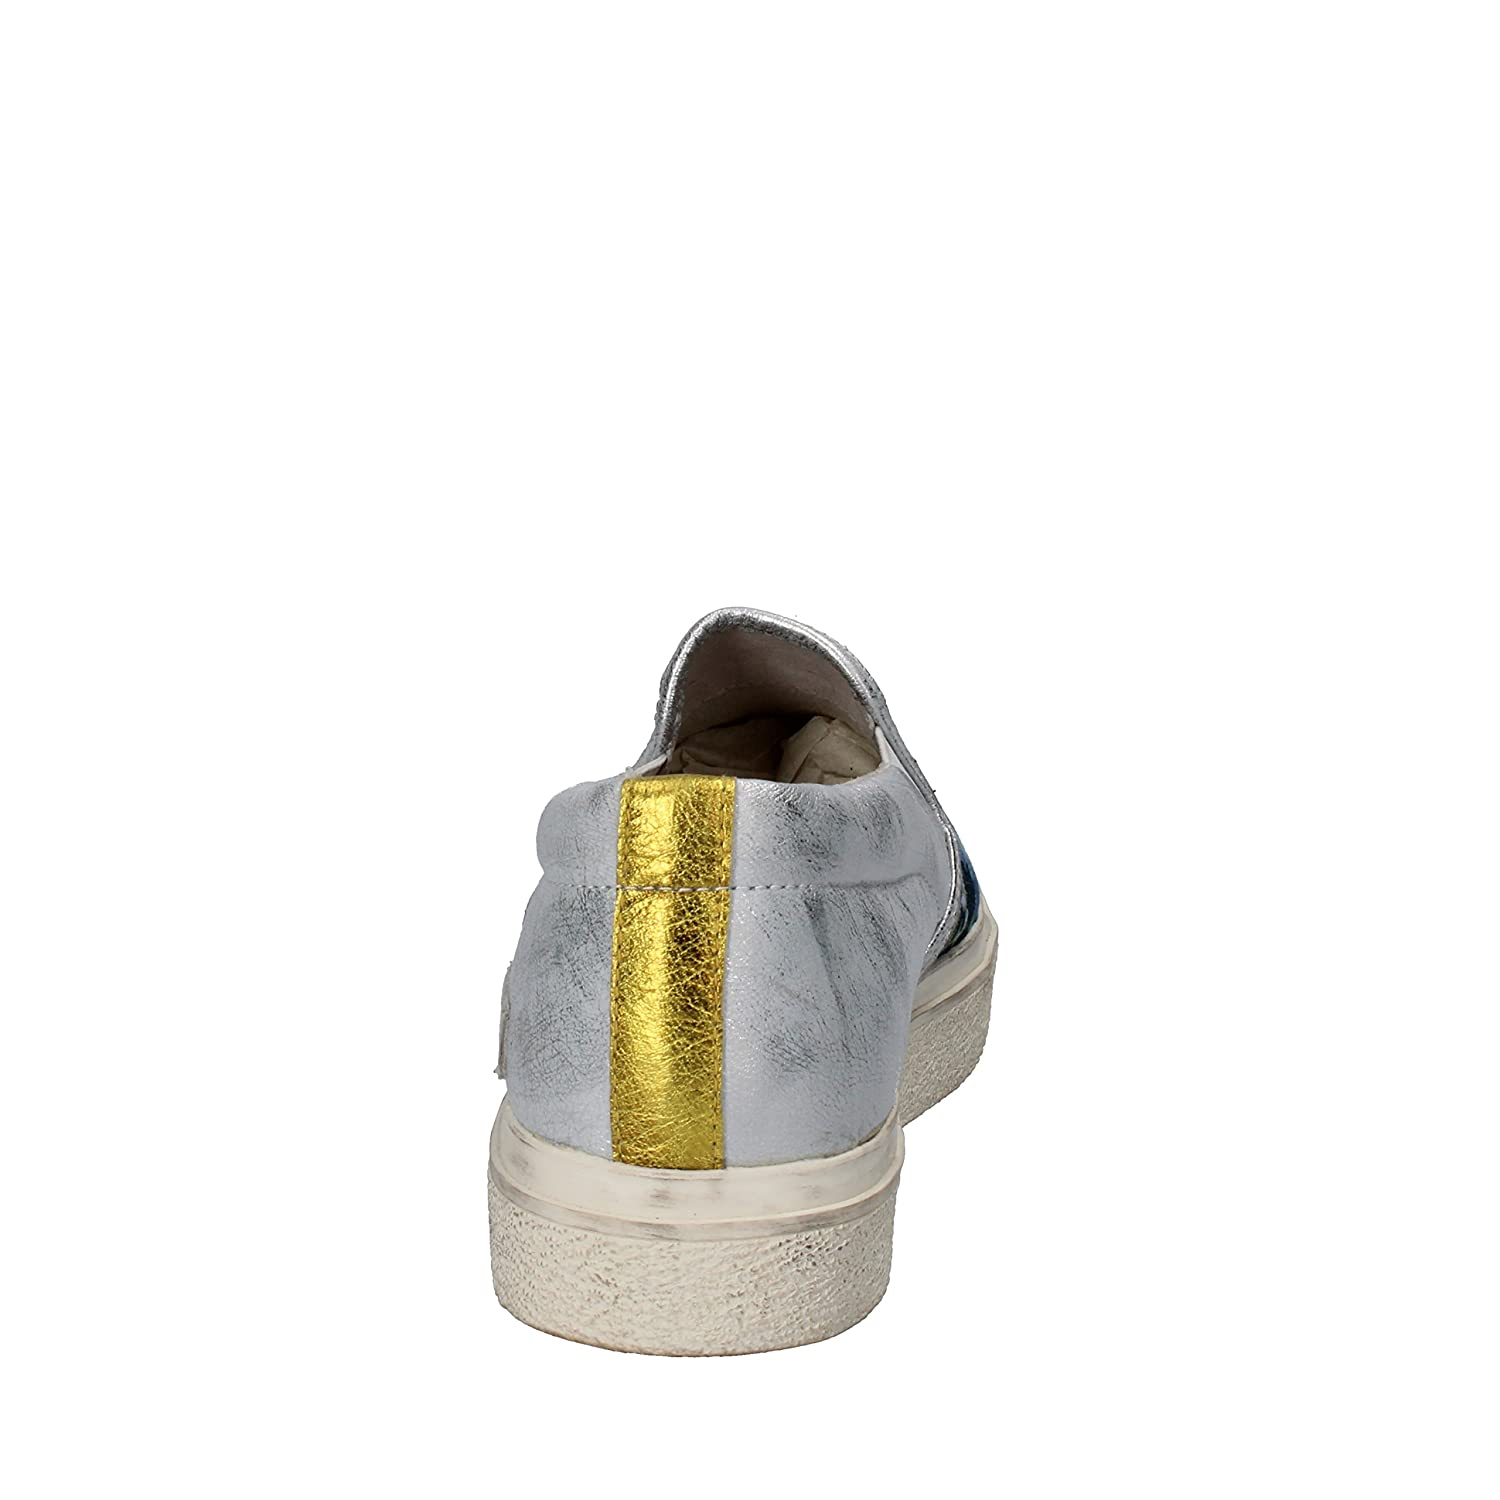 D.A.T.E. DATE Loafers-Shoes Womens Silver